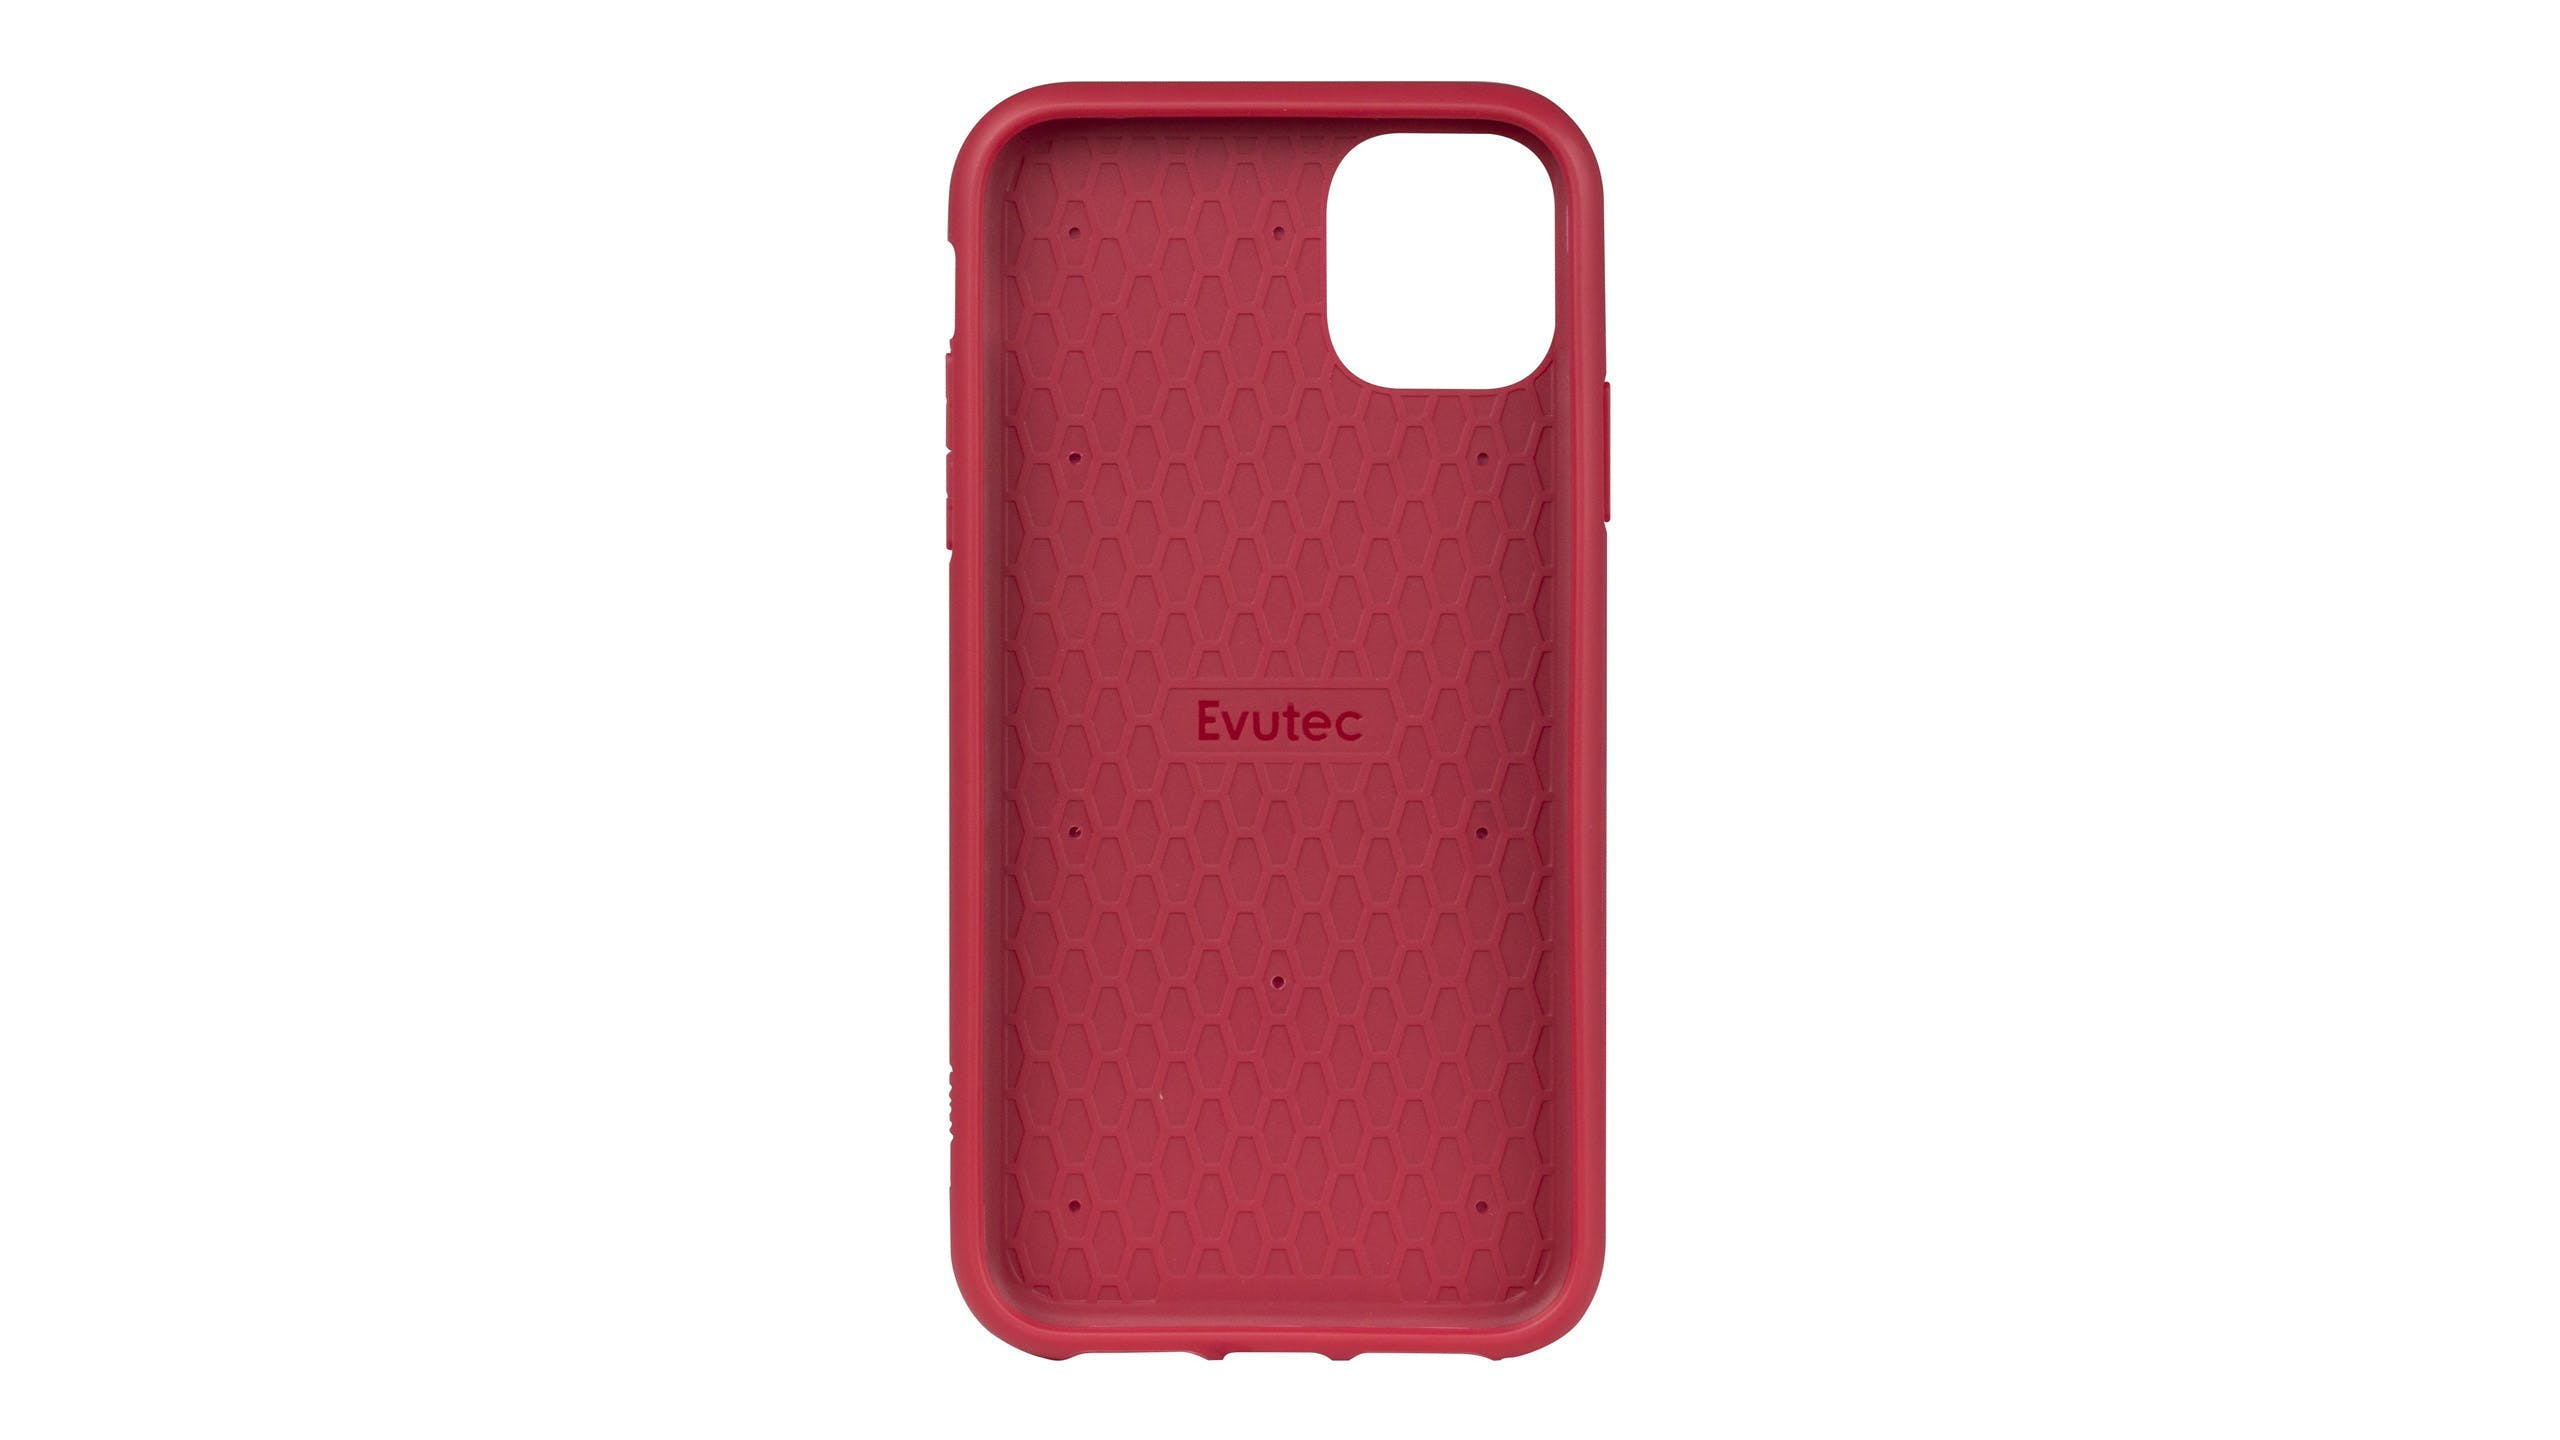 Evutec IPhone 11 Pro Max Ballistic Nylon Case - Red